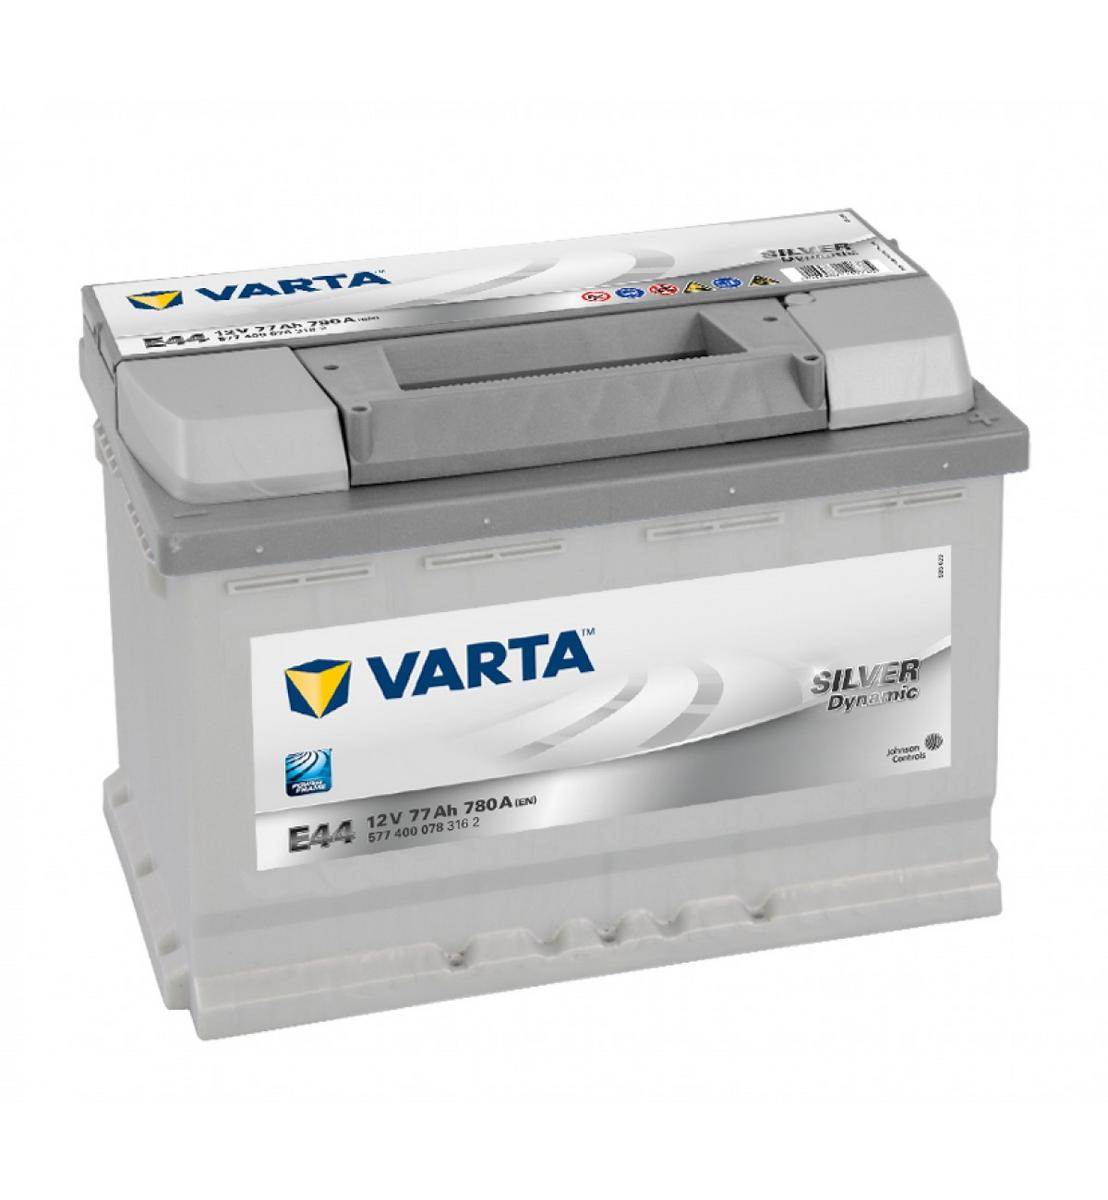 Varta E44 Heavy Duty 12 Volt 096 77Ah 780CCA 5 Year Alfa Audi Citreon Fiat Merc Car Battery